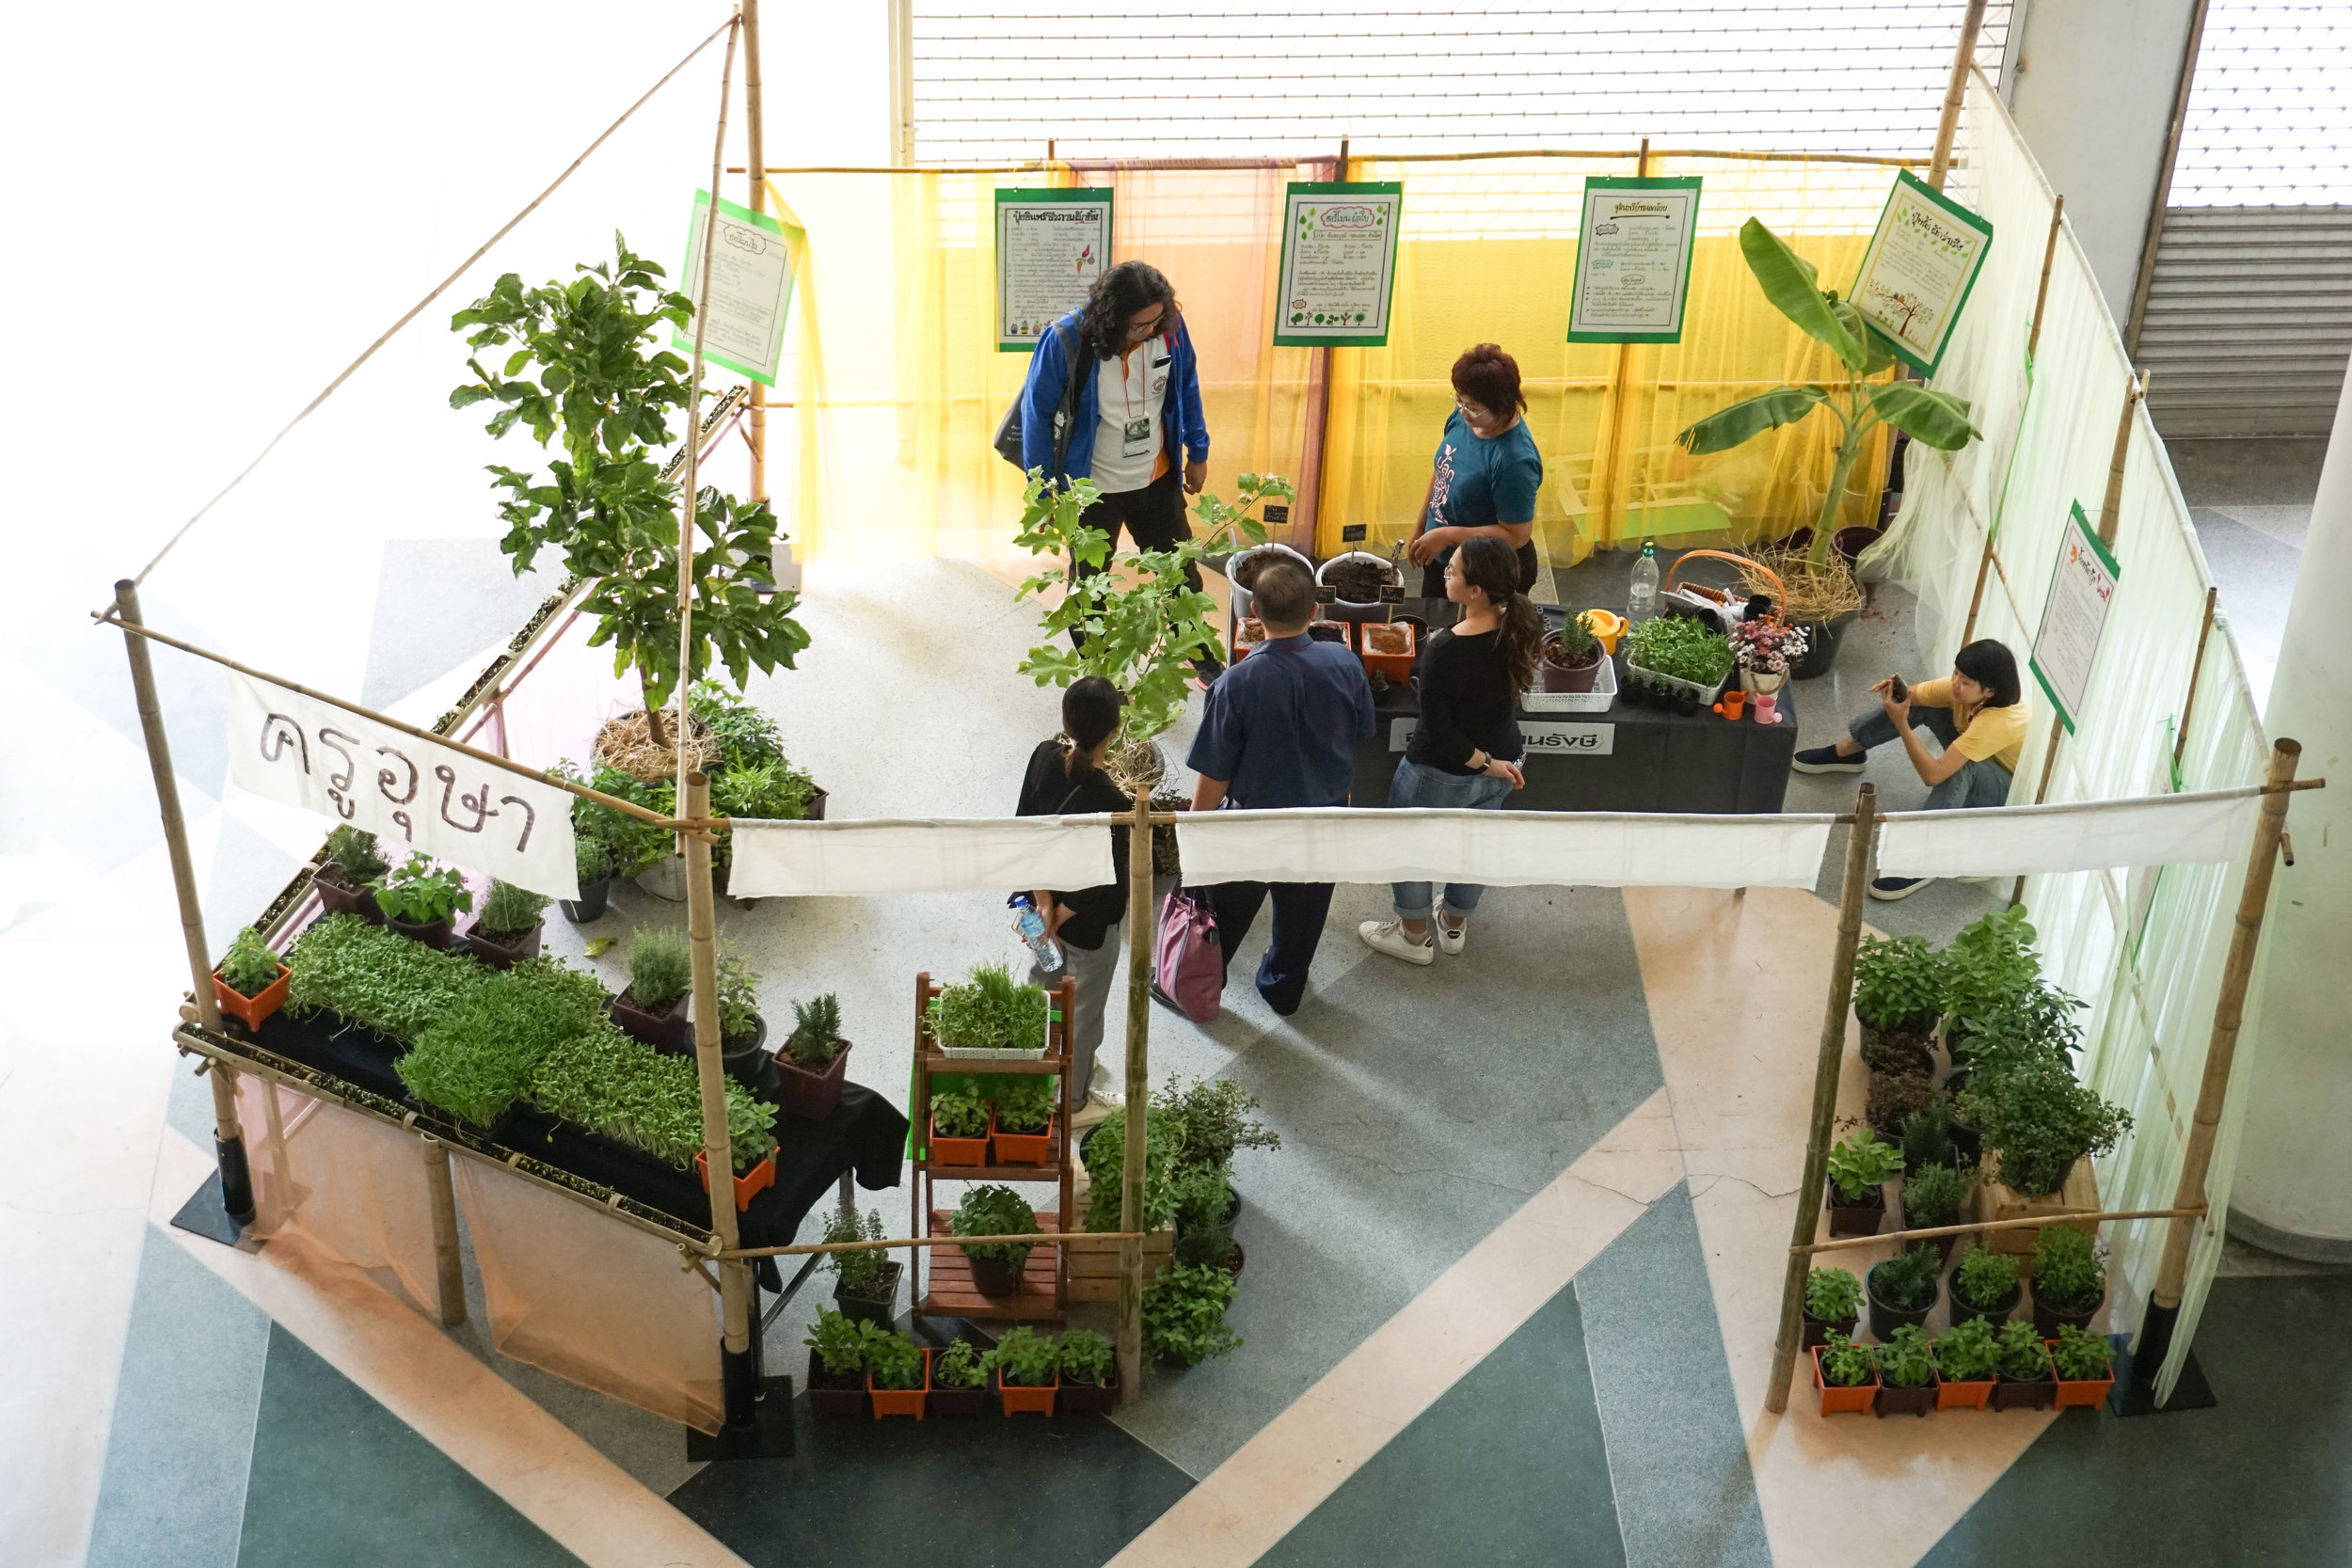 City Farming for a Sustainable City Event: Exhibition and workshop space for urban farmer groups